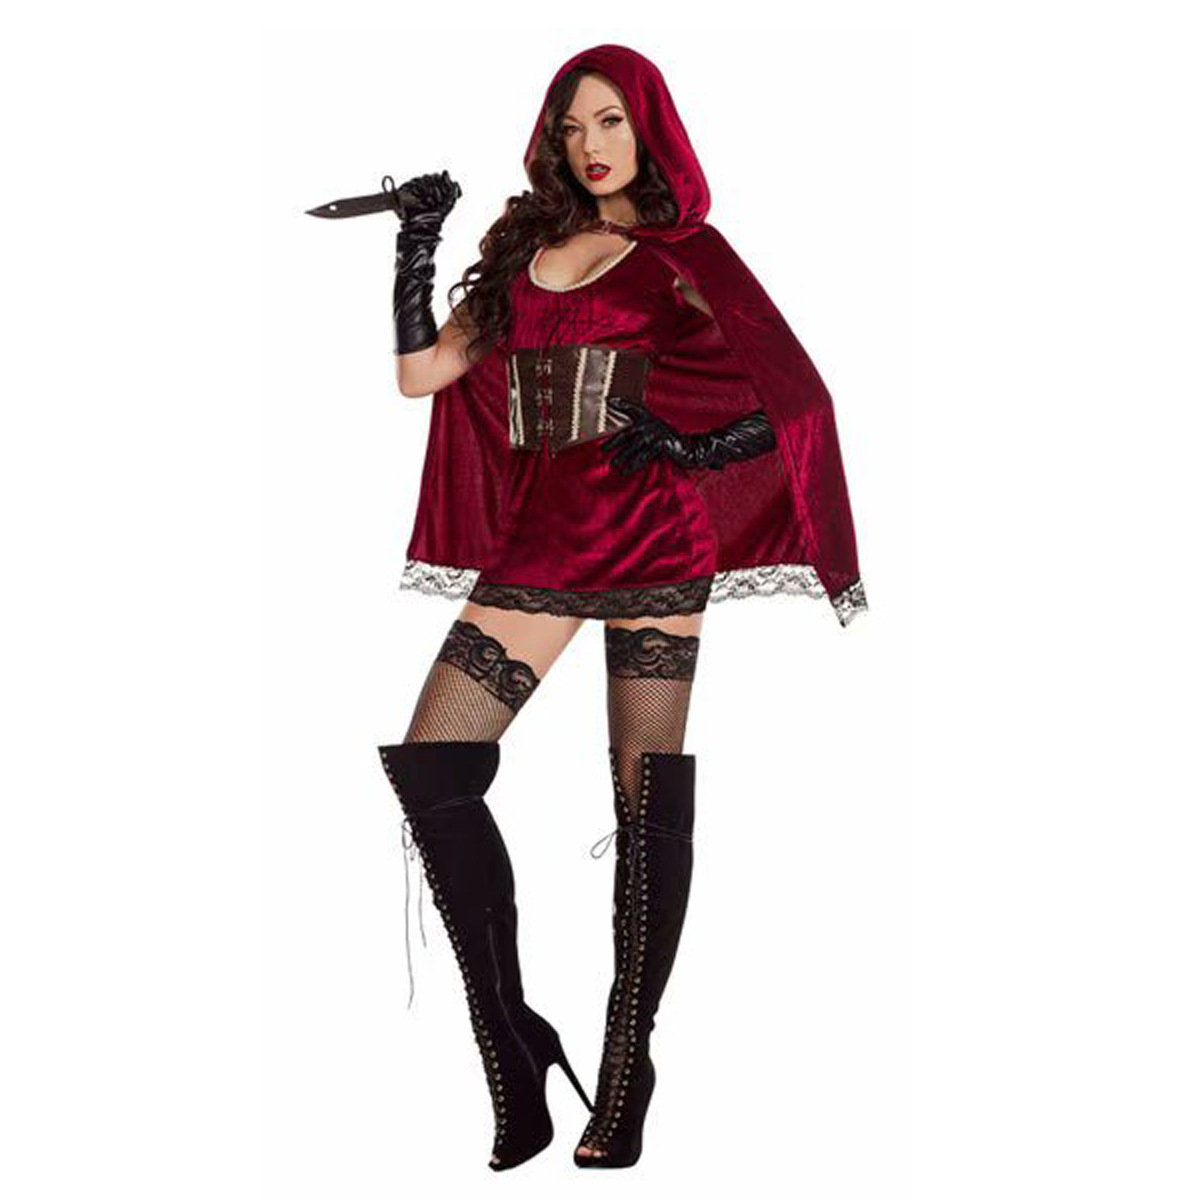 Castle King uniform adult role playing Costume Halloween Cosplay New Little Red Riding Hood